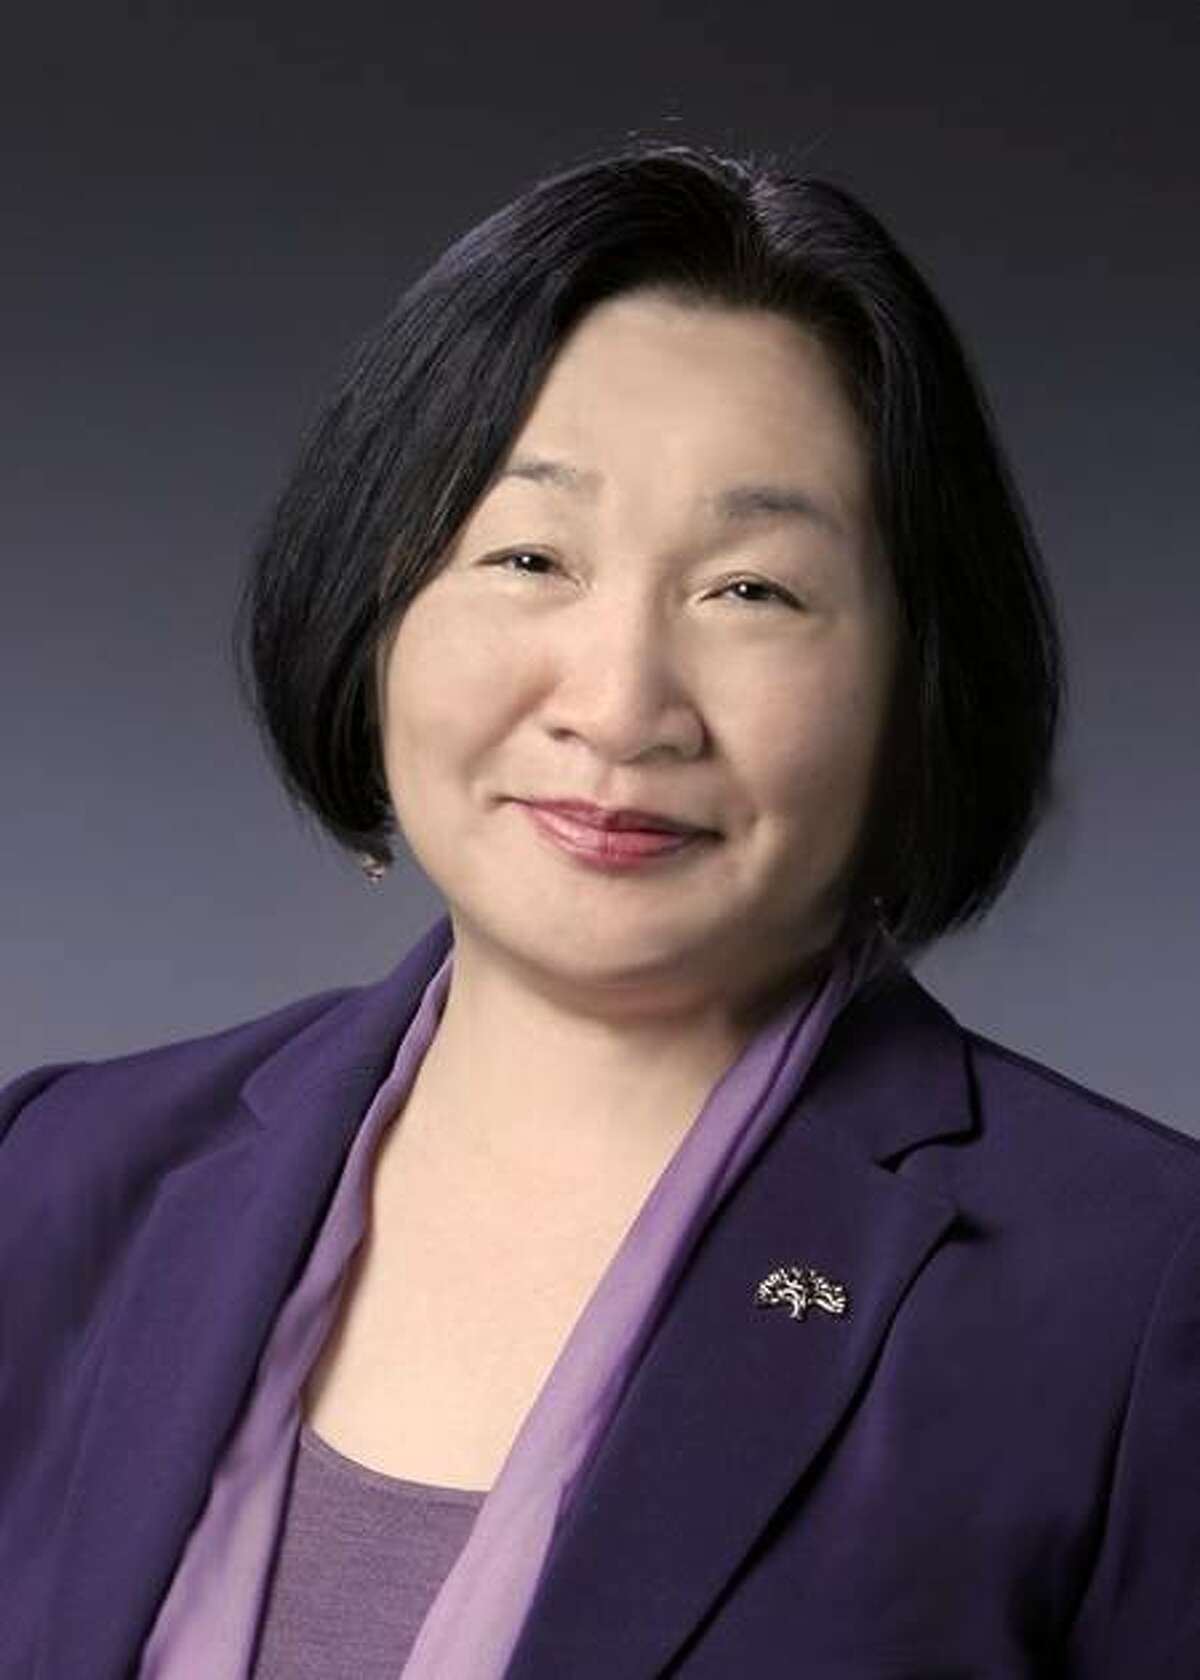 Jean Quan, Oakland City Councilwoman, is running for Oakland Mayor